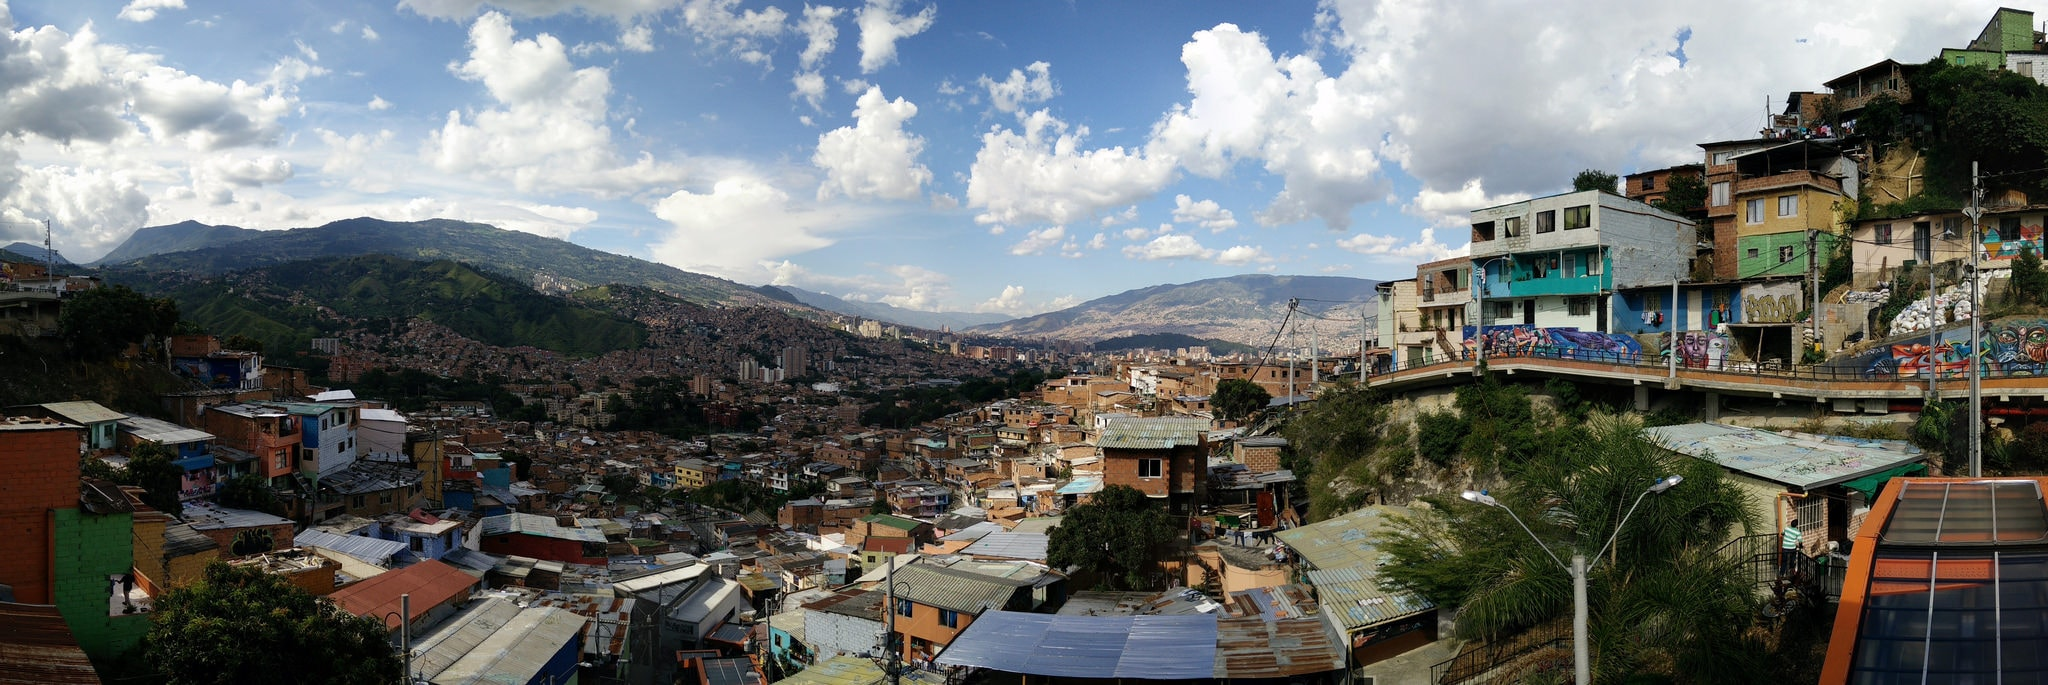 Comuna 13 Medellin things to do in Colombia